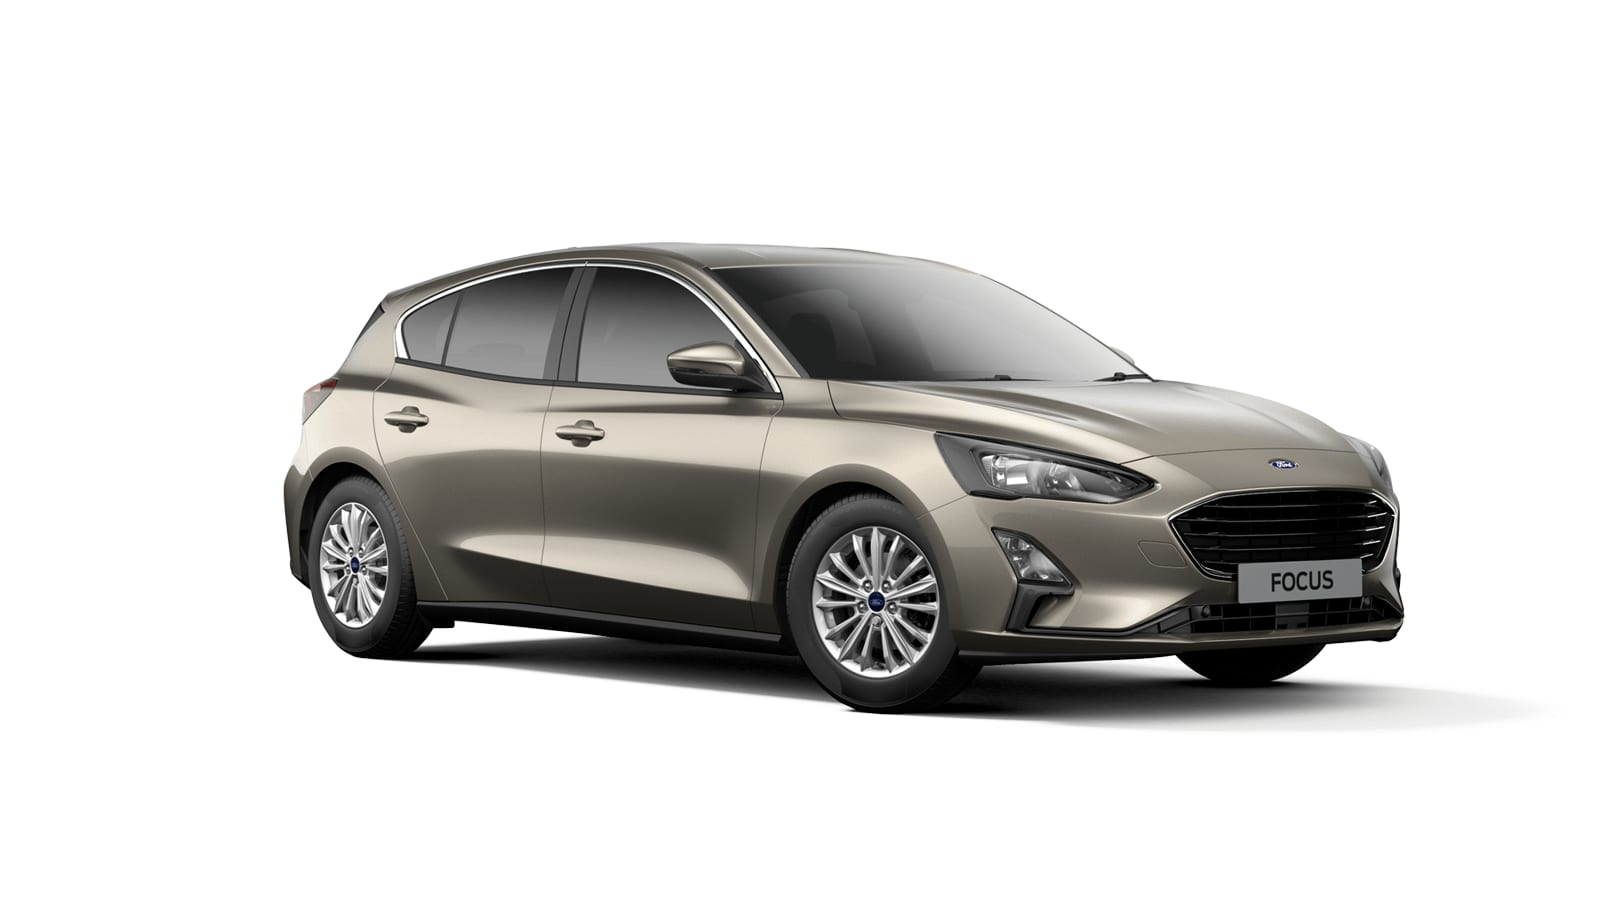 https://www.dealerinternet.co.uk/images/FOCUS%20C346/2019.75/5%20Door/Titanium/DIFFUSED-SILVER.png